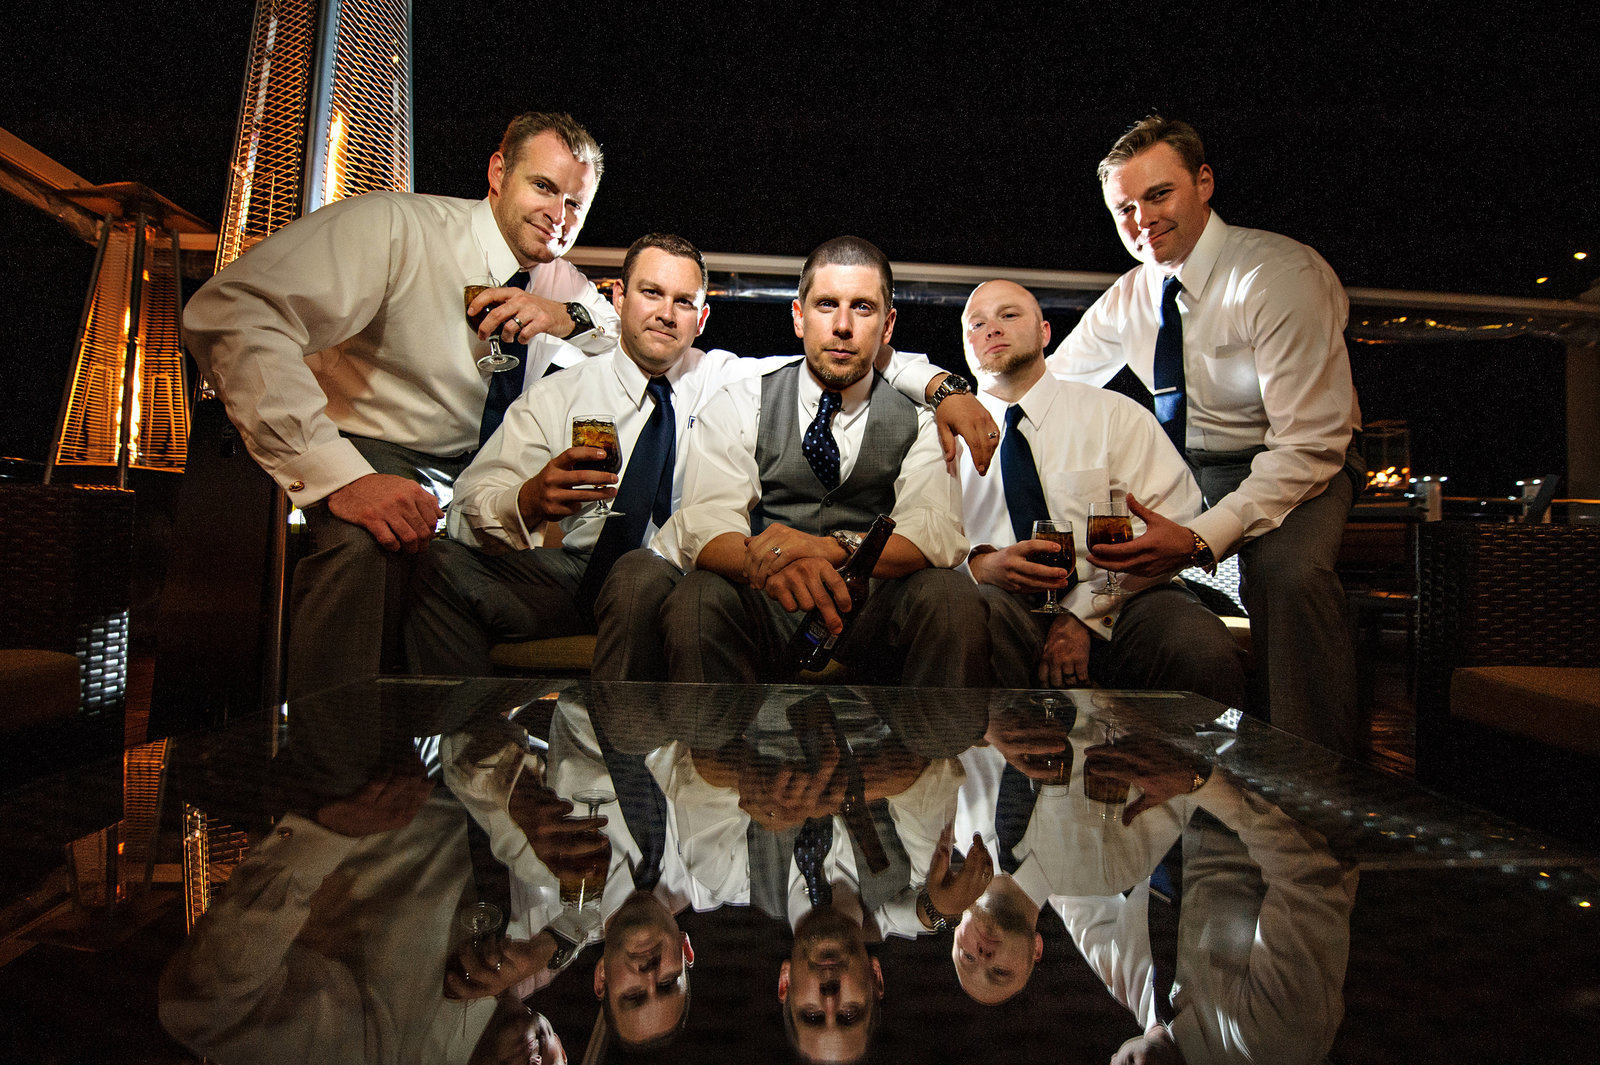 A groom and his groomsmen having a drink on the balcony of his wedding venue.